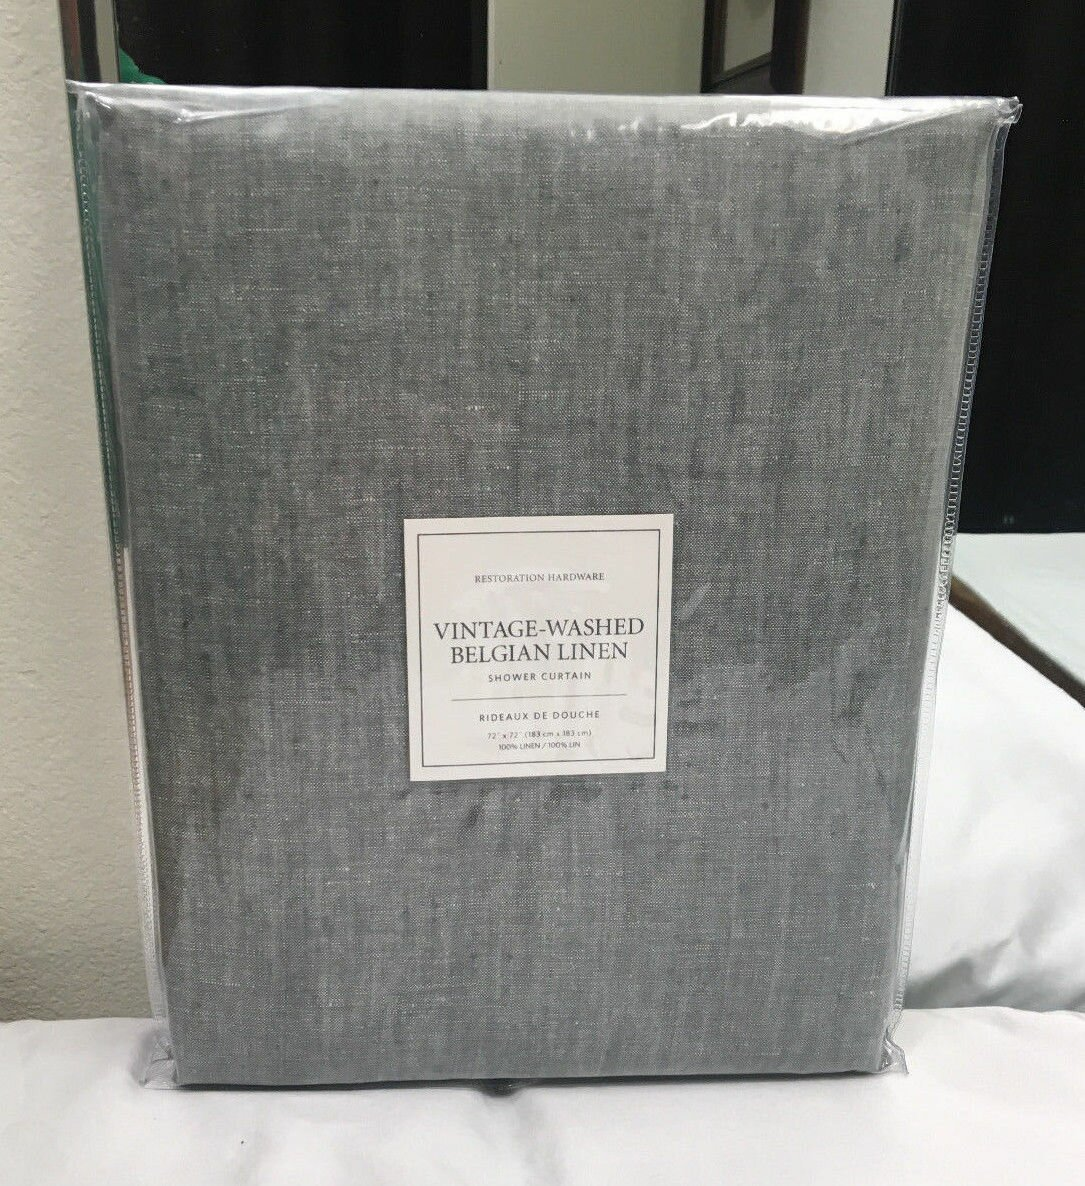 High End Shower Curtains | Elegant Shower Curtains | Restoration Hardware Shower Curtain